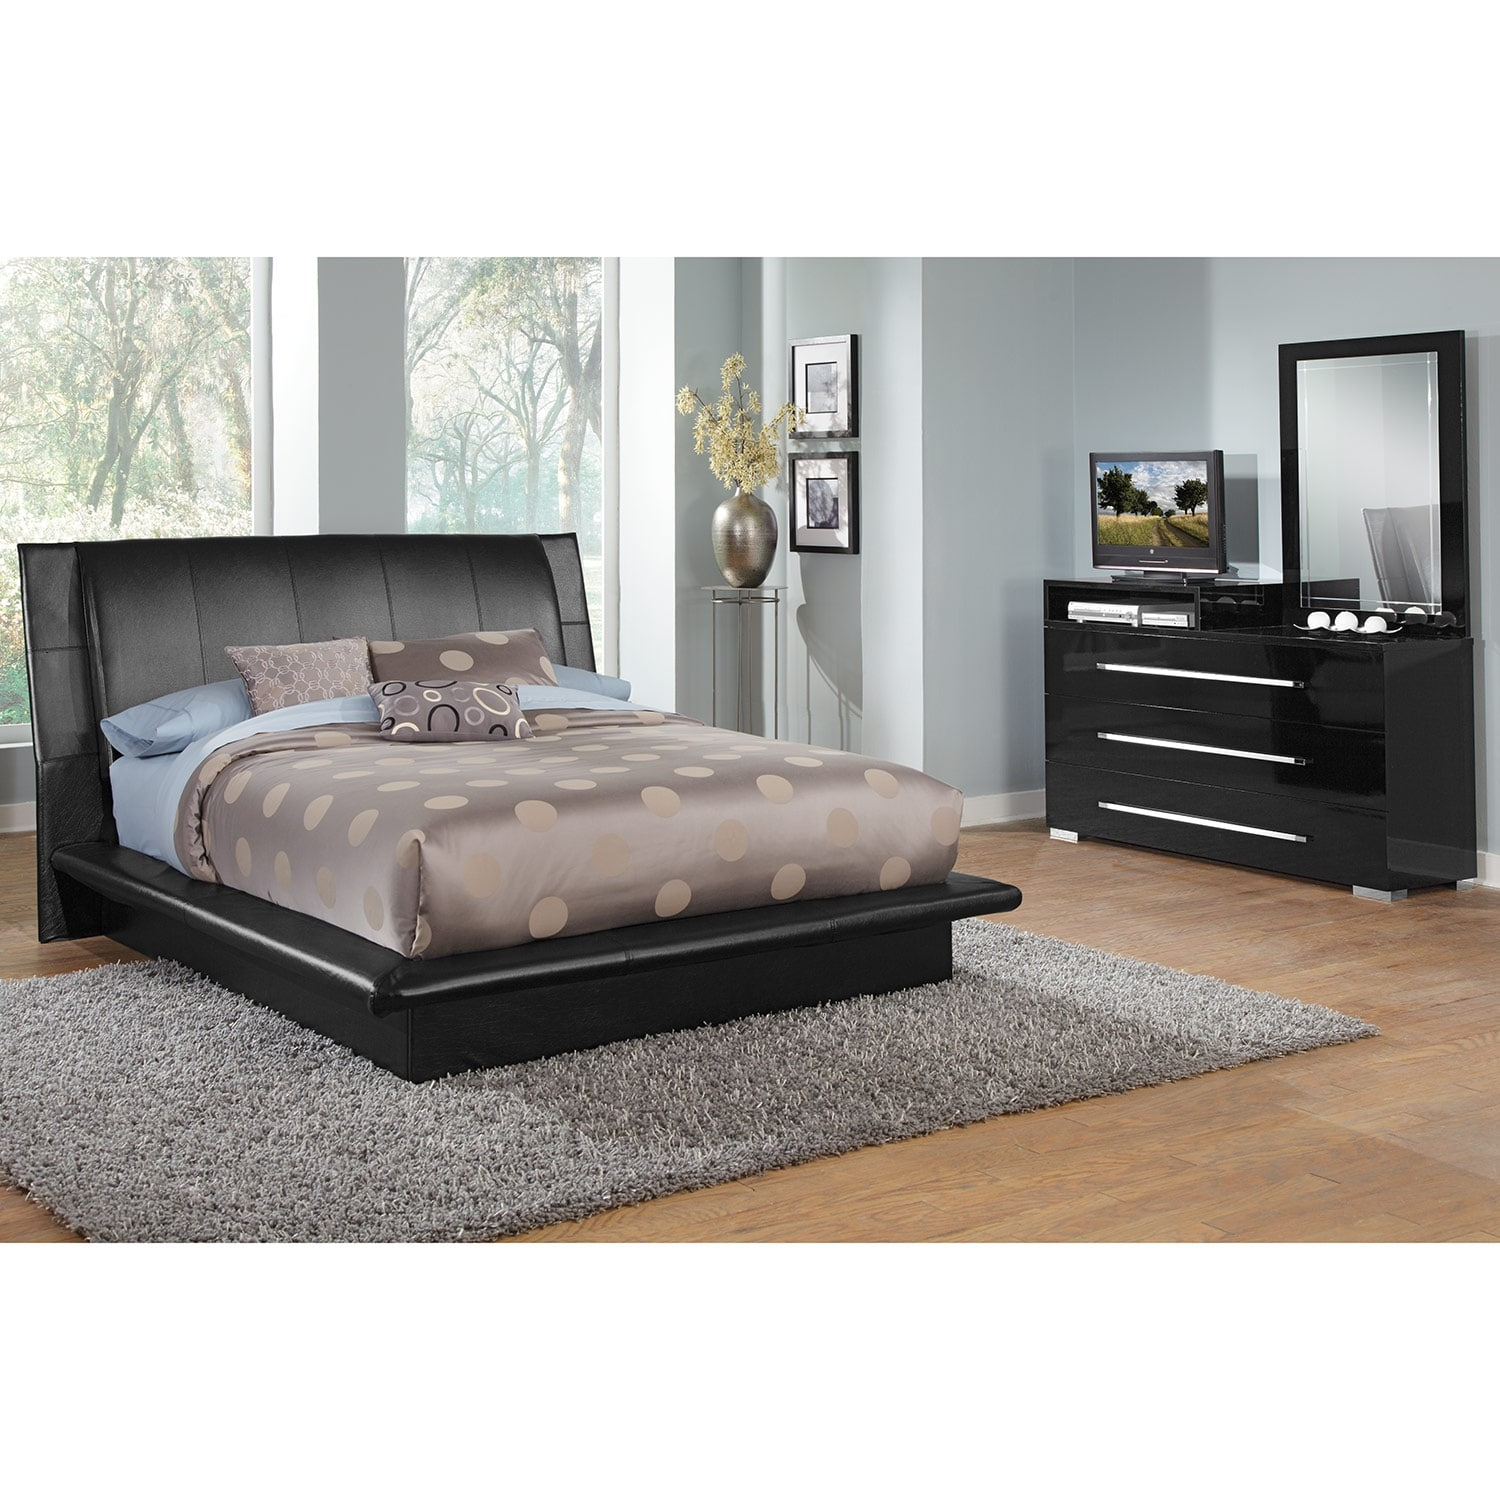 Dimora black 5 pc queen bedroom value city furniture for Bedroom sets with mattress included